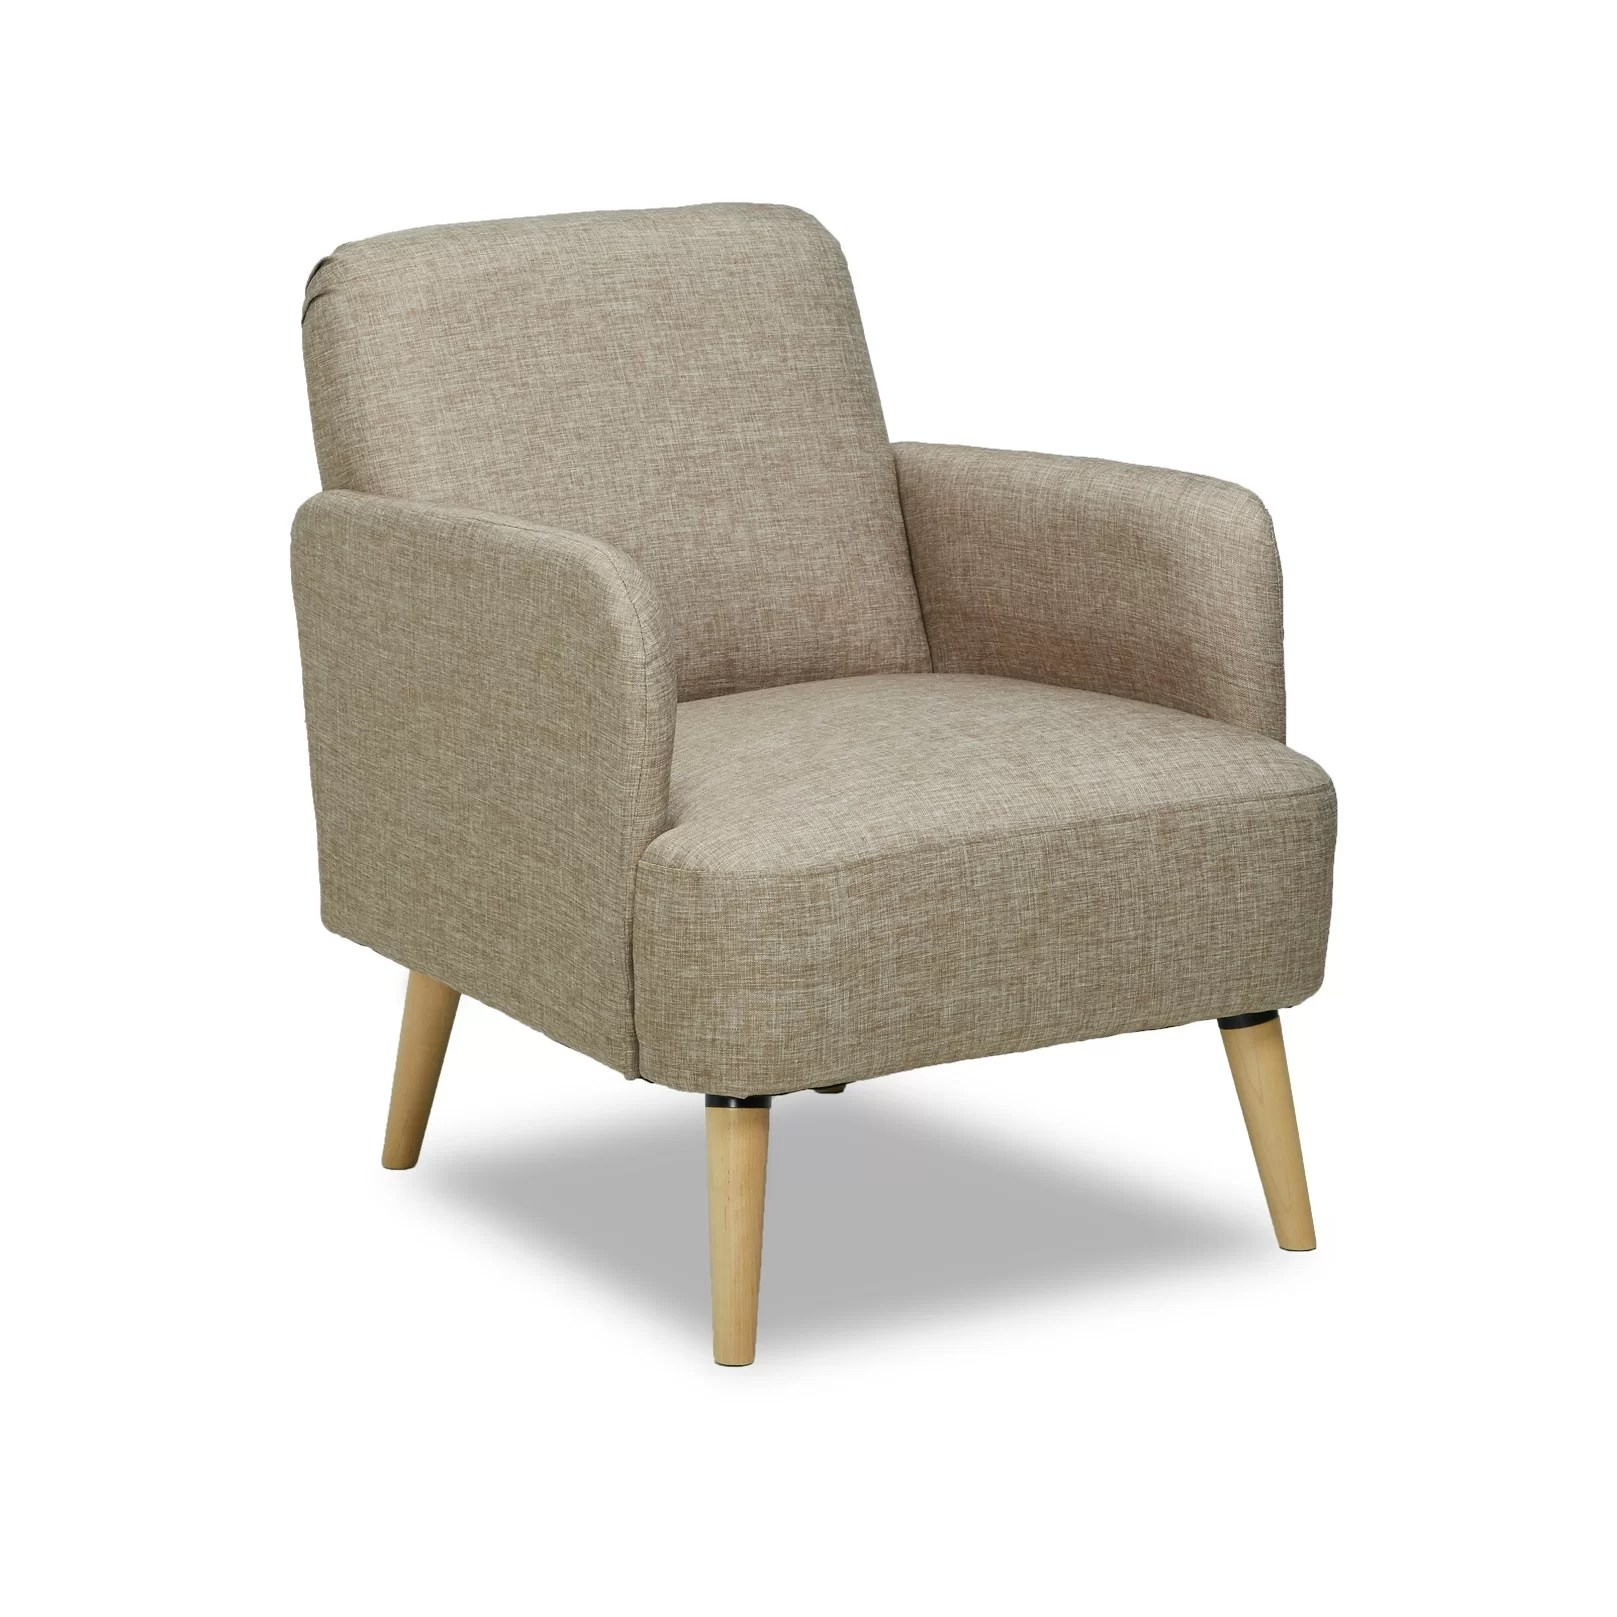 Armed Accent Chairs Accent Arm Chair Wayfair Ca